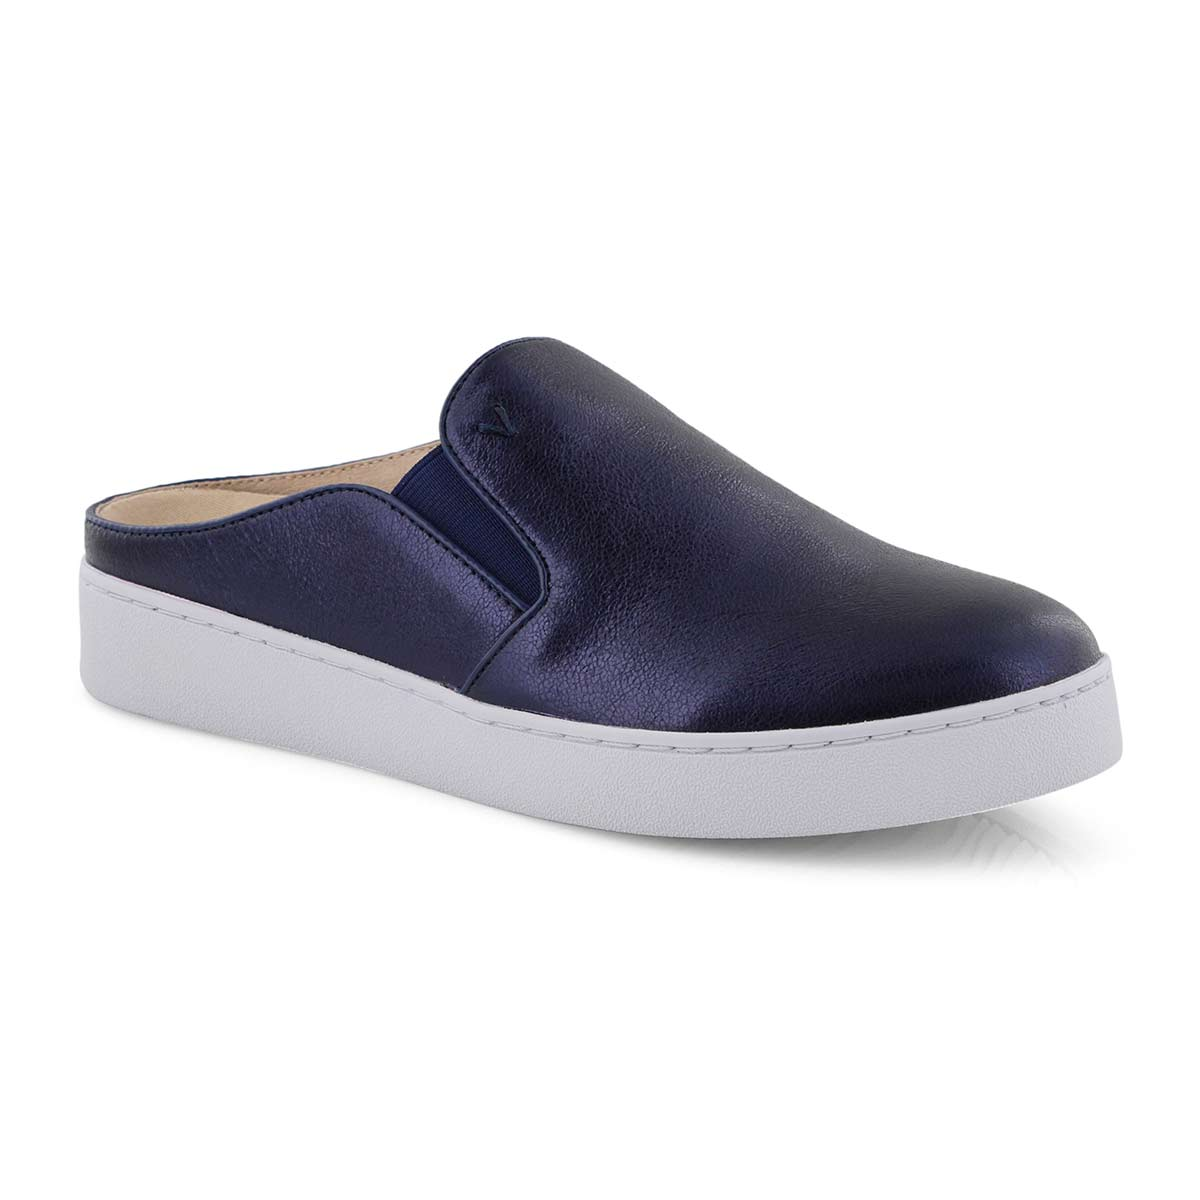 Lds Dakota navy mtlc casual slip on shoe